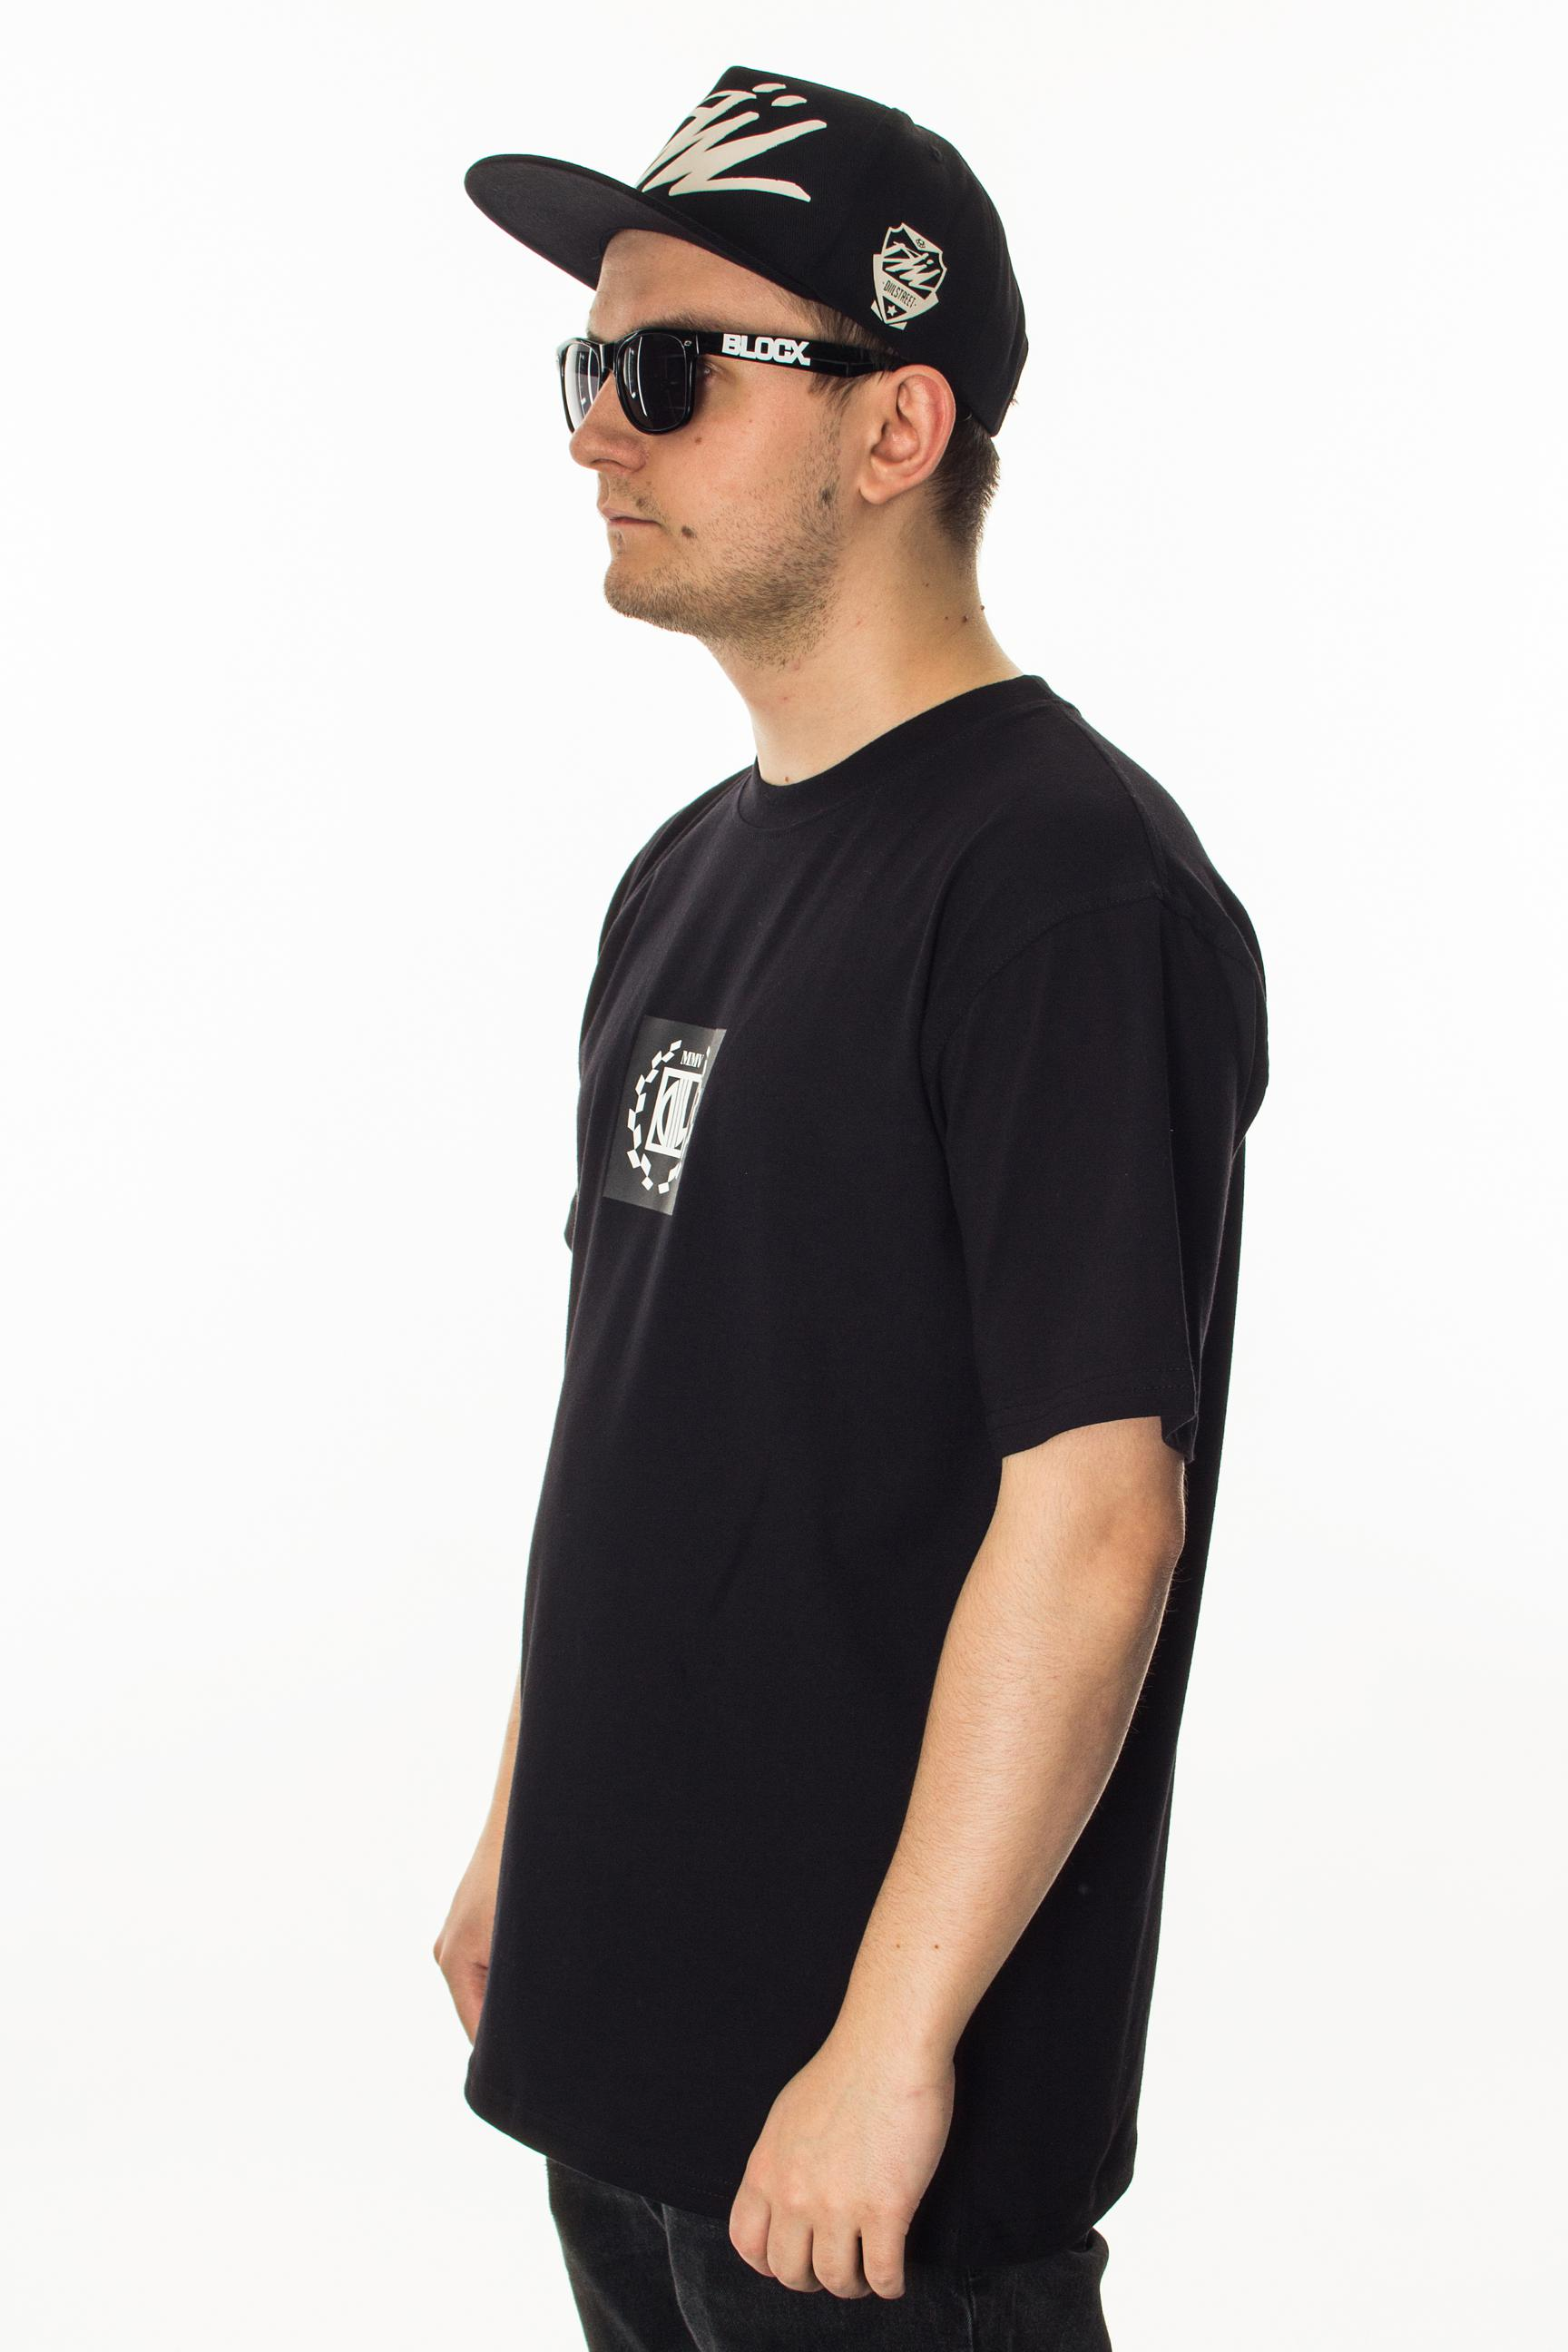 DIIL T-SHIRT LOGO BLACK